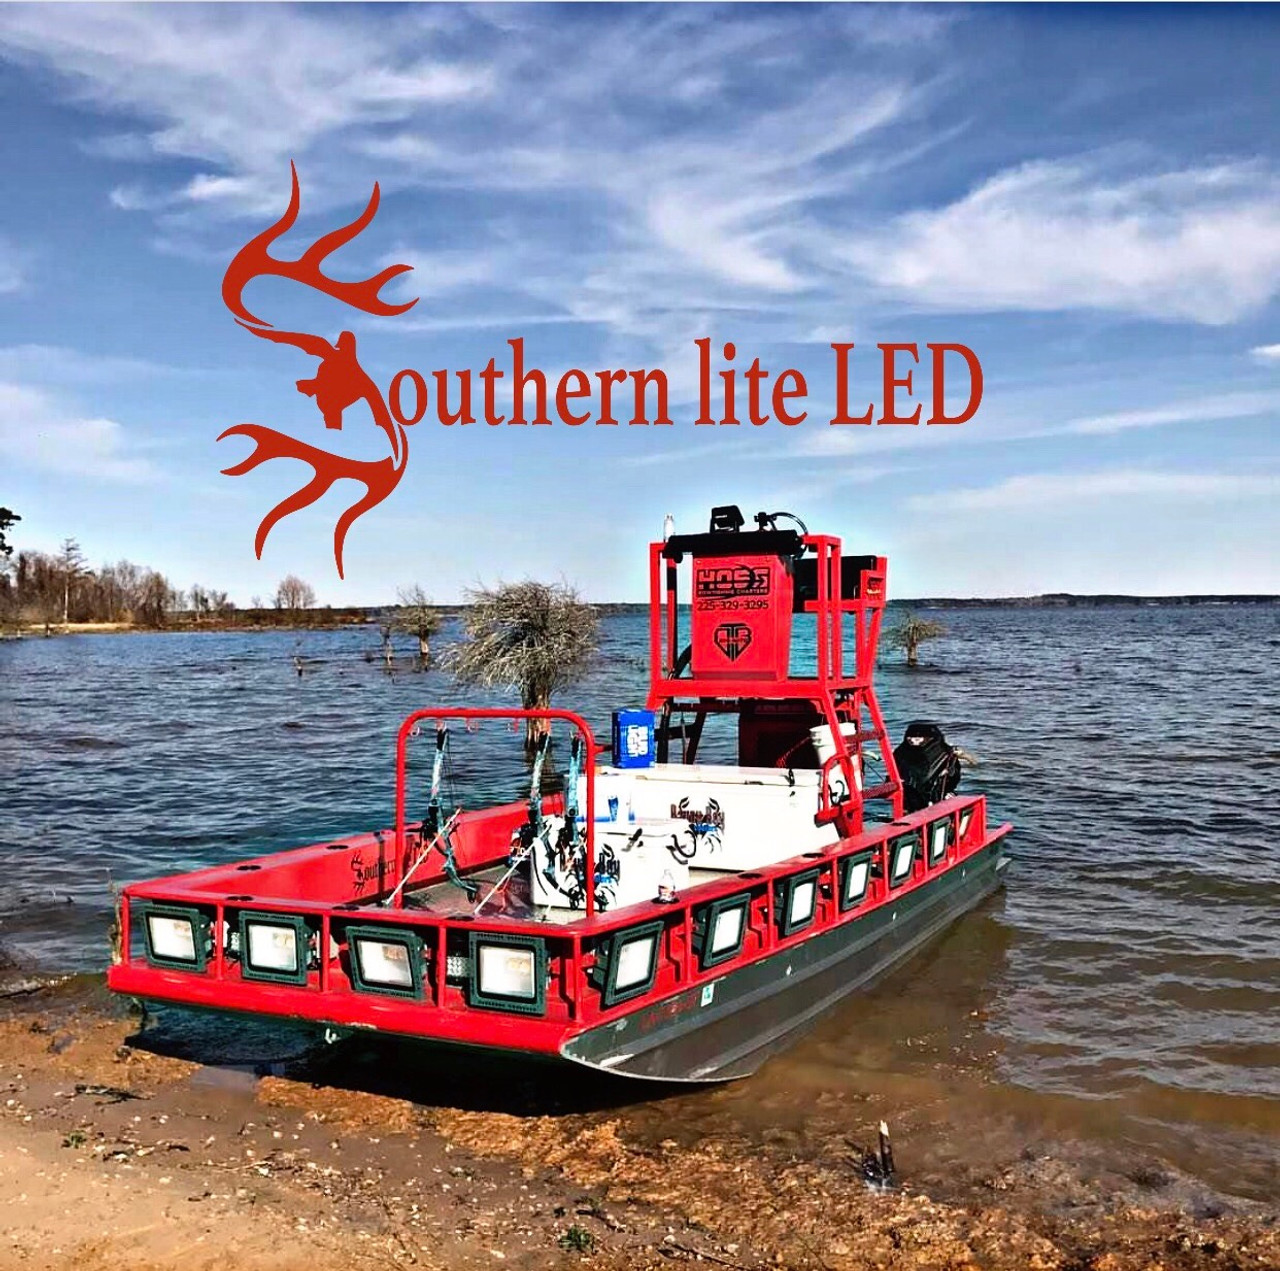 **NEW** Southern lite LED Pro 160 Watt LED Bowfishing Light